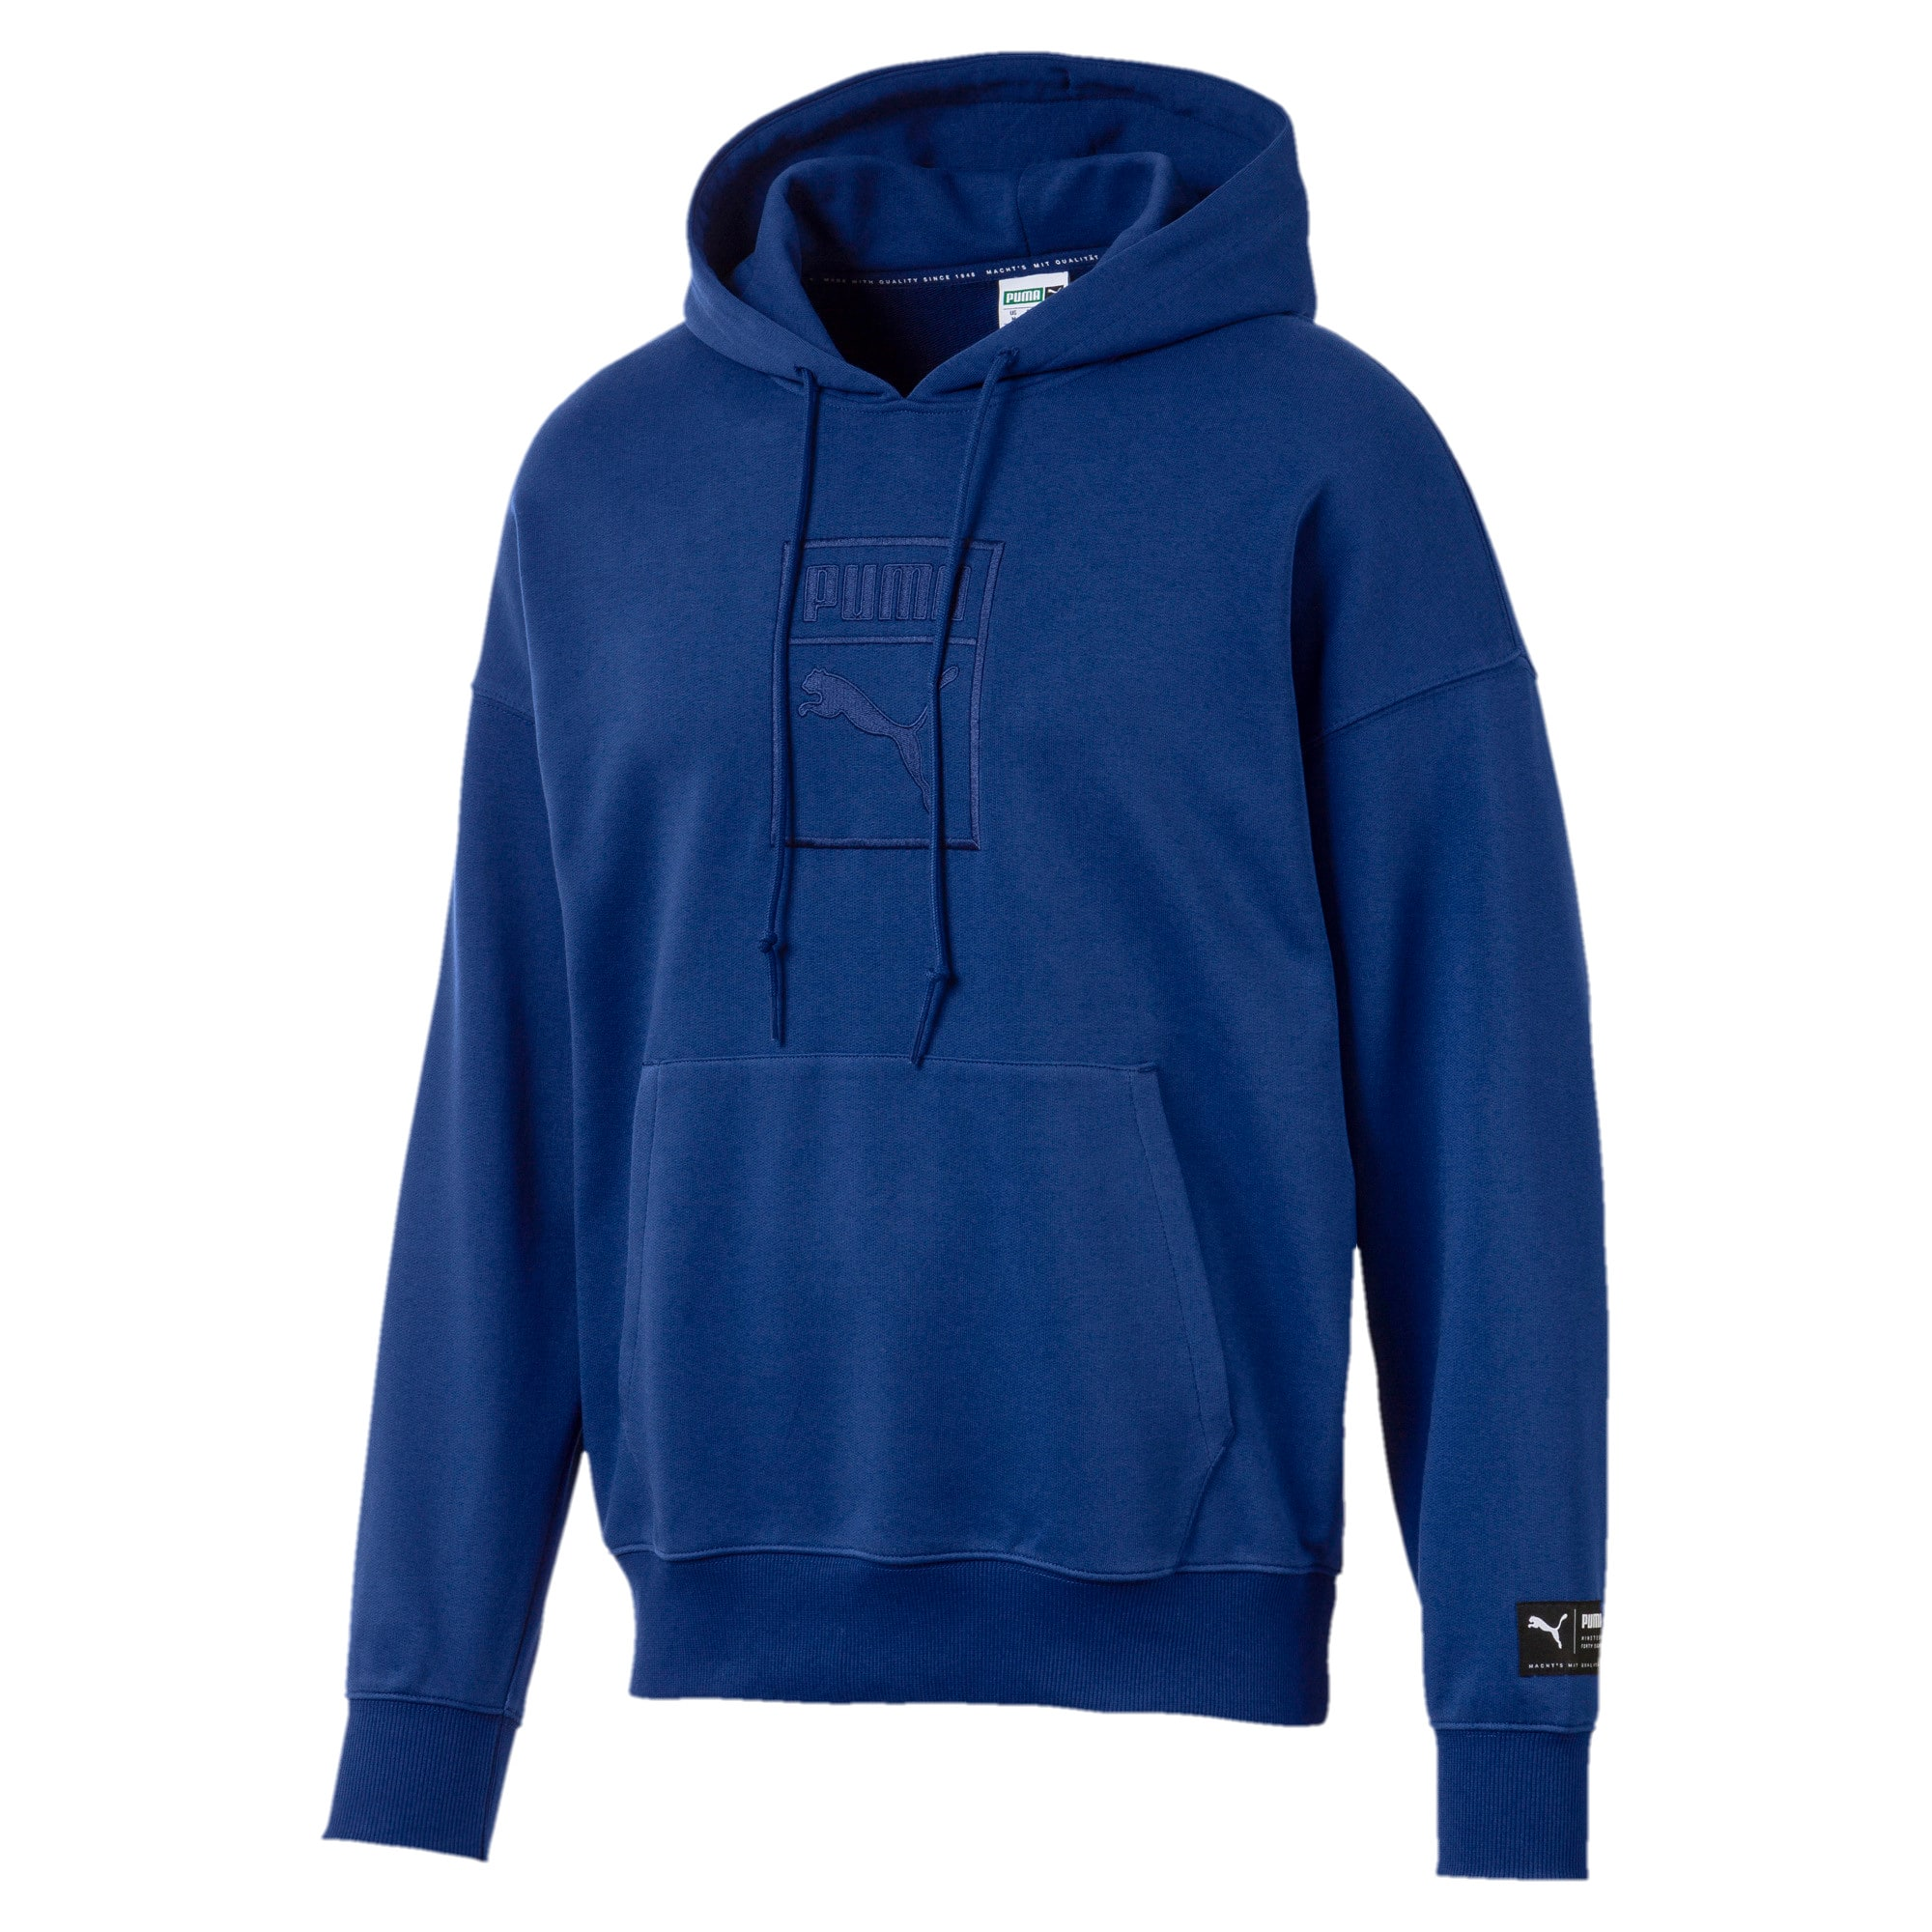 Thumbnail 1 of Downtown Oversize Men's Hoodie, Sodalite Blue, medium